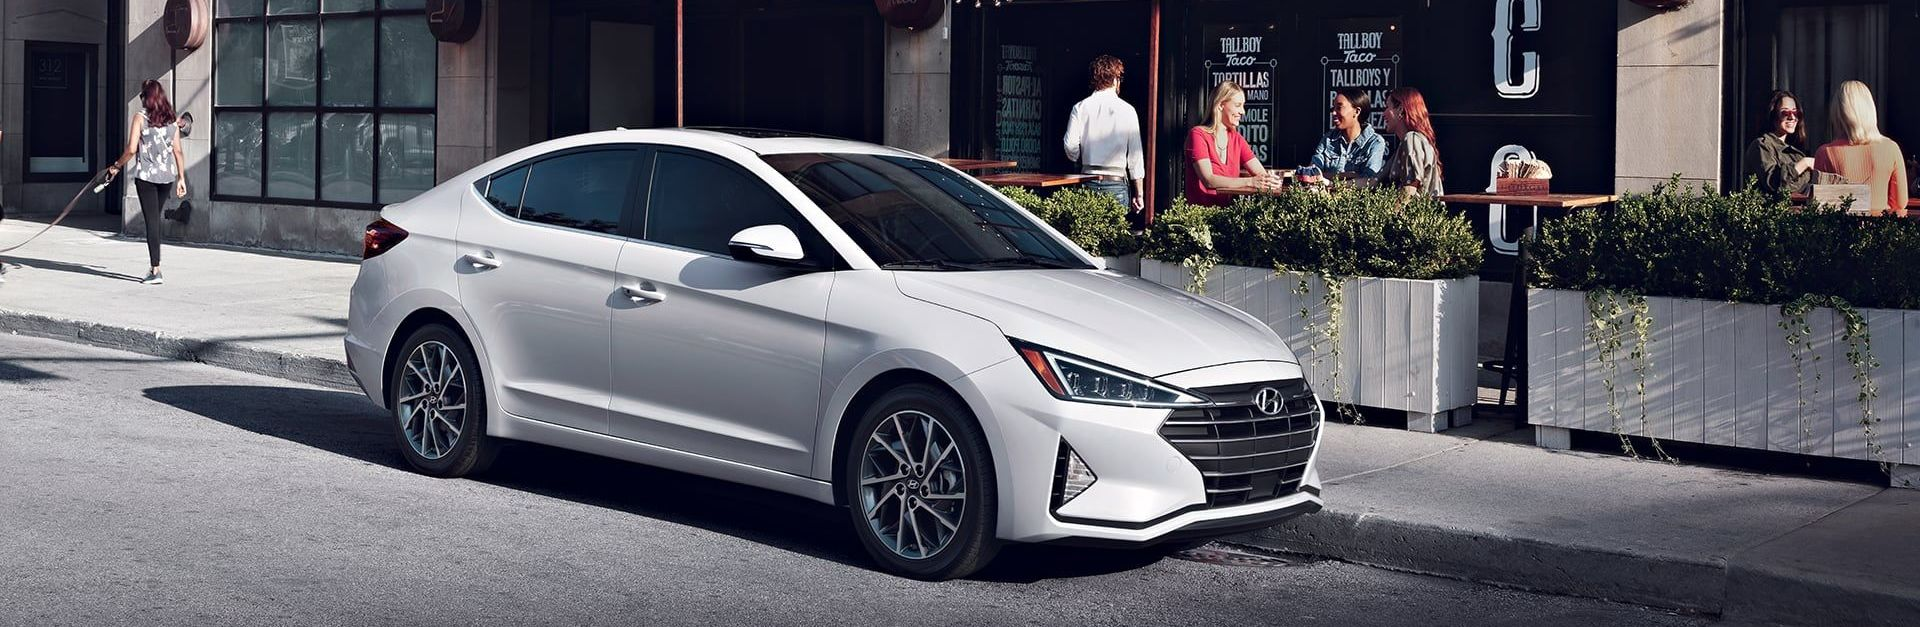 Test Drive the Elantra Today!